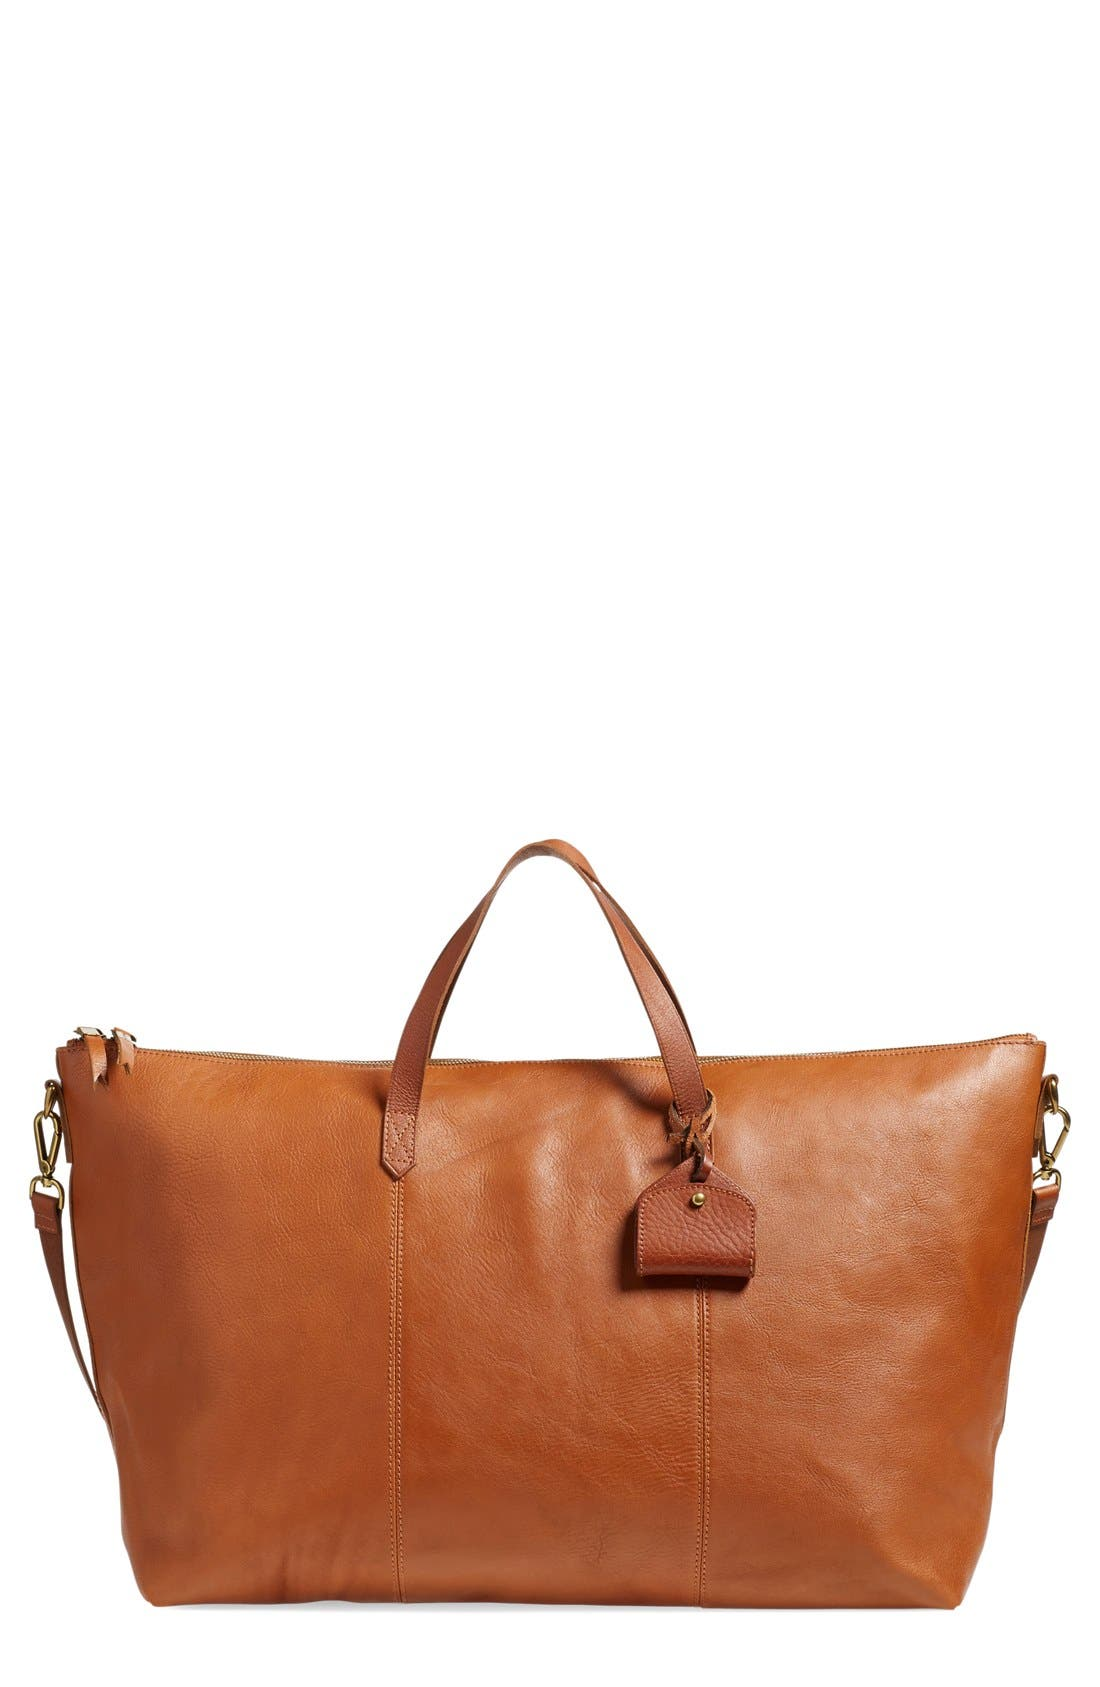 'Transport' Weekend Bag,                         Main,                         color, ENGLISH SADDLE